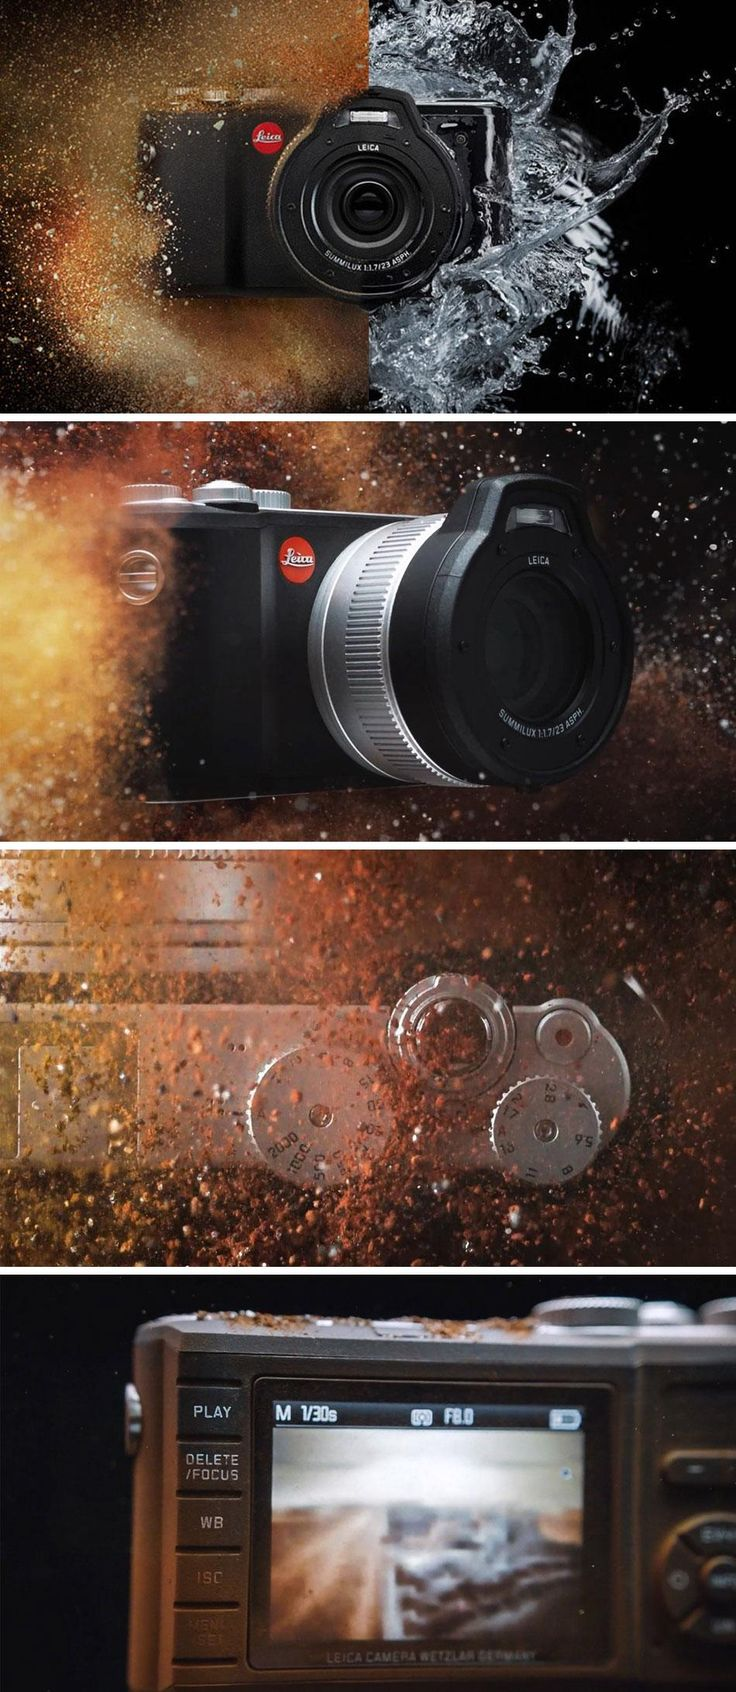 The Leica X-U camera is both rugged and waterproof while still featuring a beautiful design